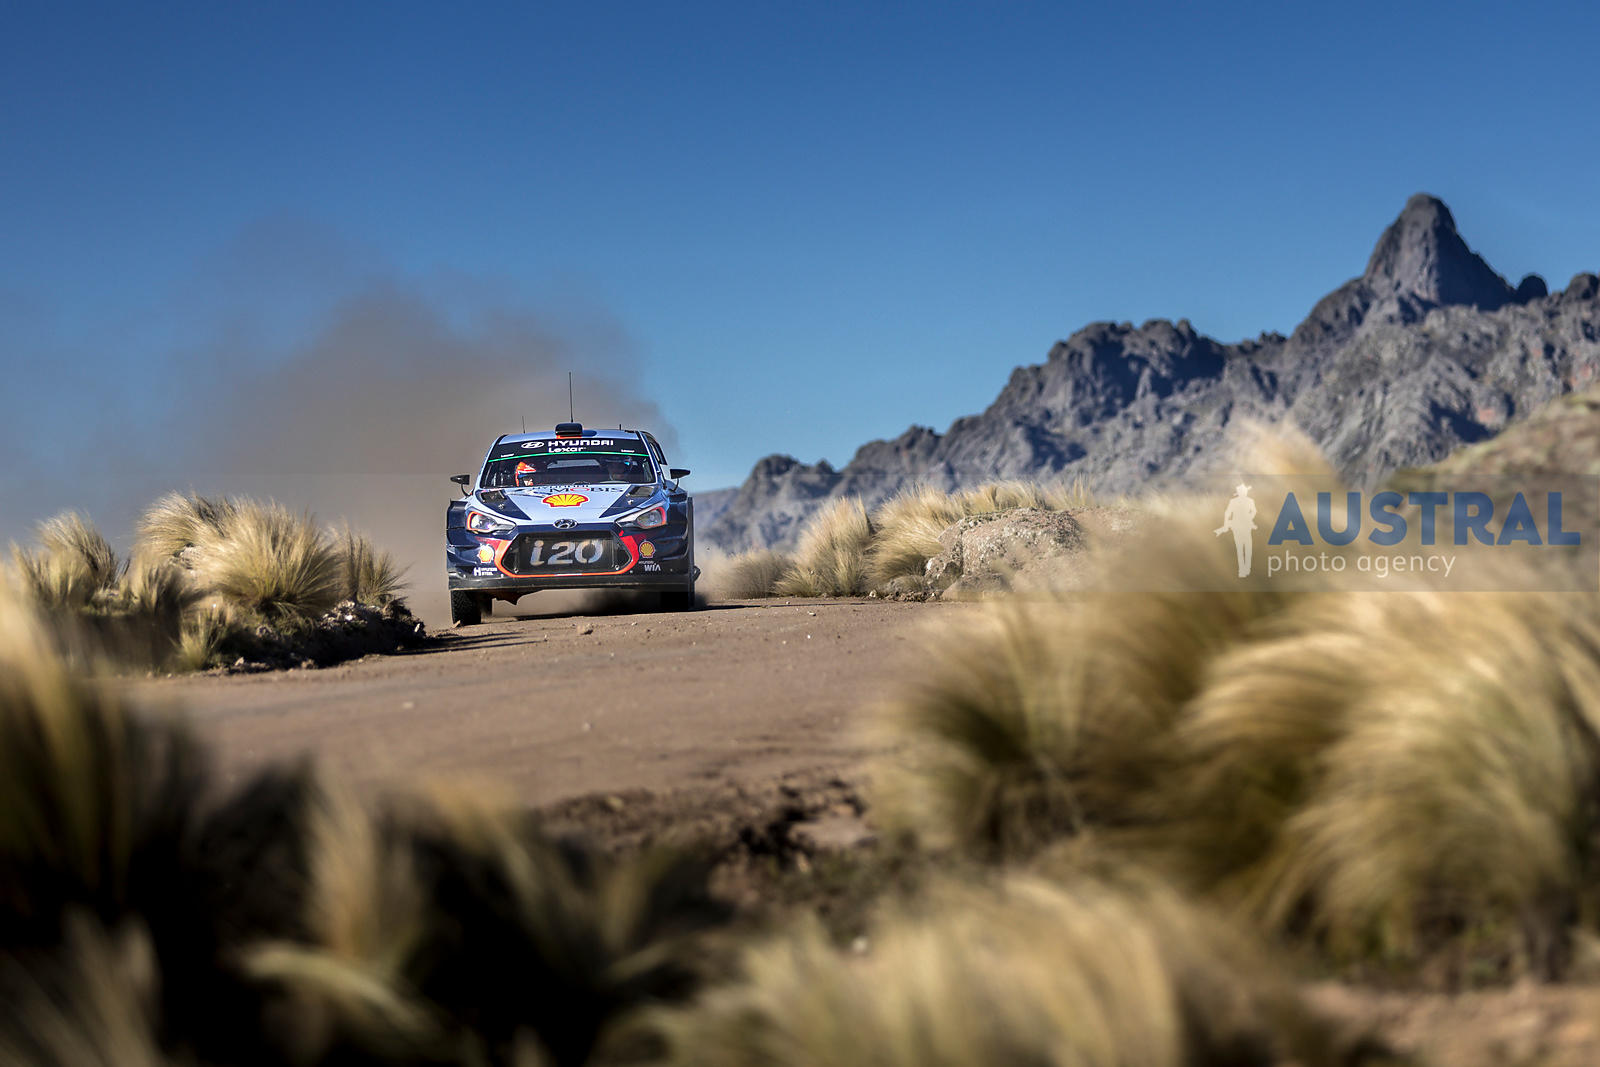 2017 FIA World Rally Championship.Round 05, Rally Argentina.27-30 April 2017..Thierry Neuville, Nicolas Gilsoul, Hyundai i20 Coupe WRC.Photographer: Austral.Worldwide copyright: Hyundai Motorsport GmbH